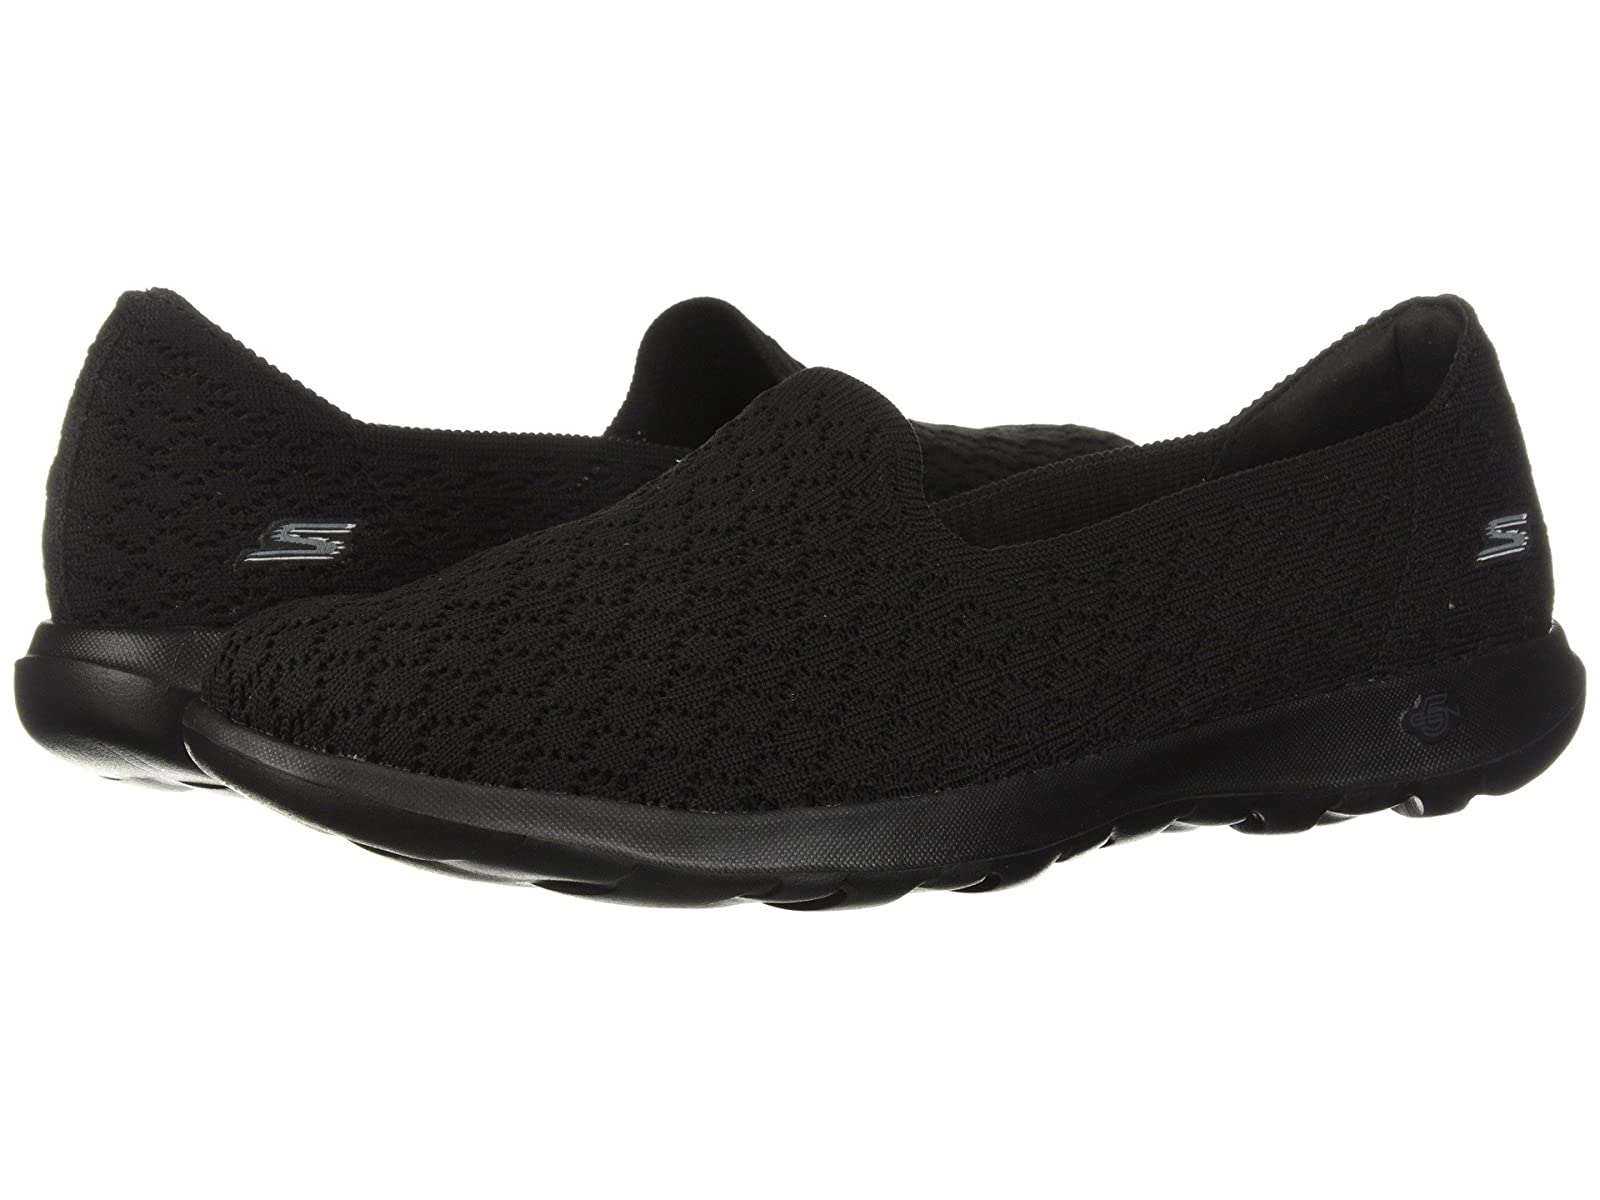 SKECHERS Performance Go Walk Lite - DaisyAtmospheric grades have affordable shoes